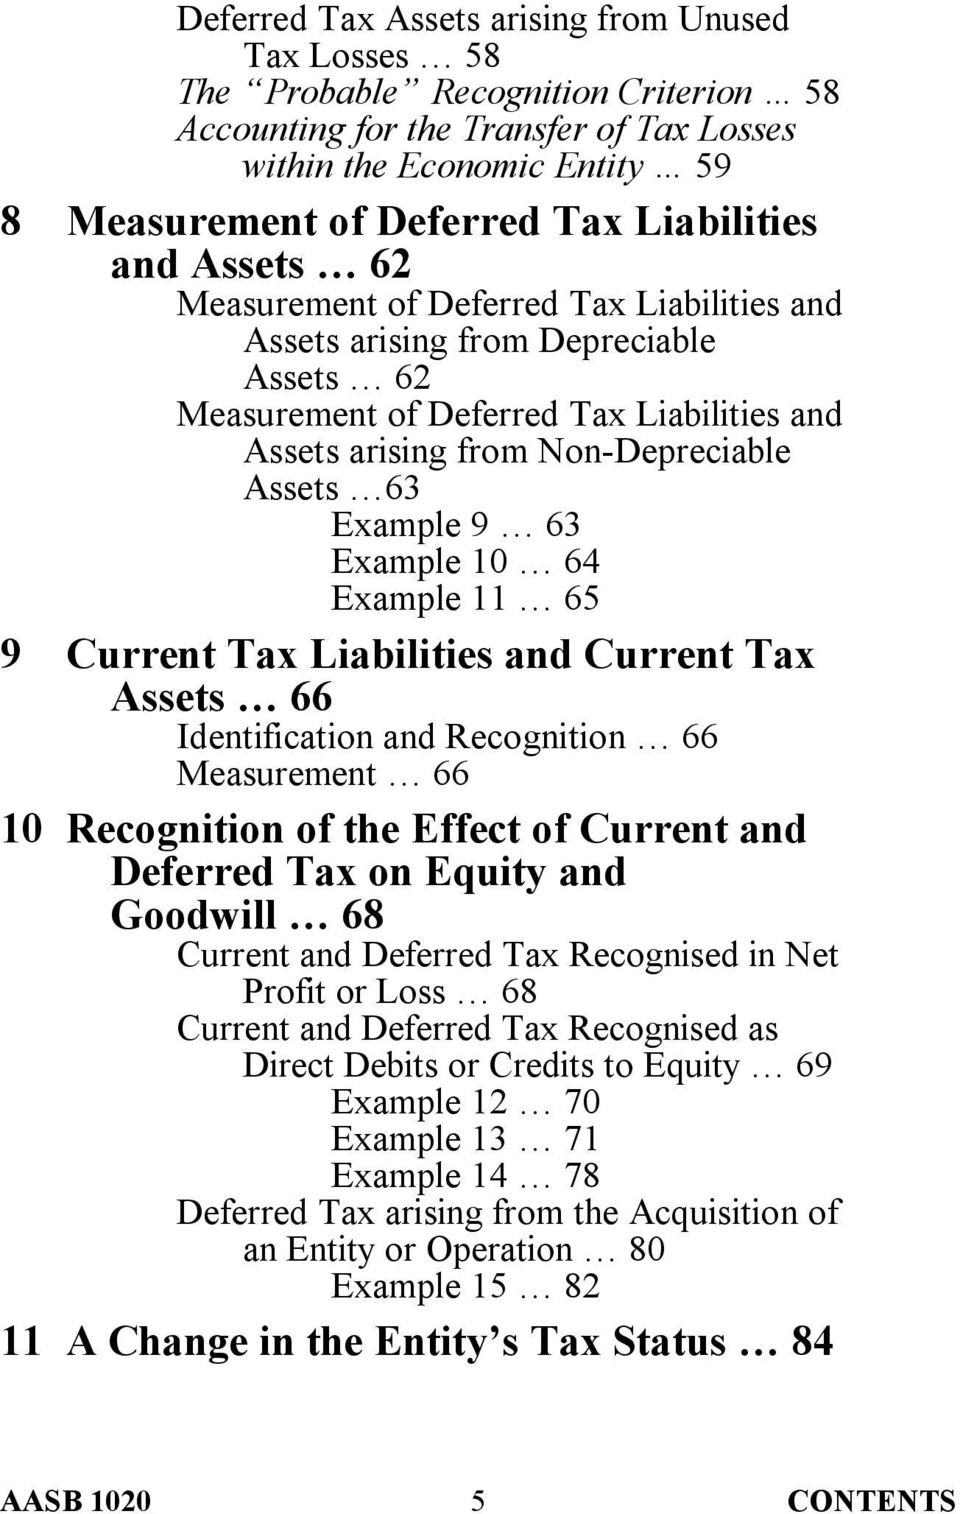 63 Example 9 63 Example 10 64 Example 11 65 9 Current Tax Liabilities and Current Tax Assets 66 Identification and Recognition 66 Measurement 66 10 Recognition of the Effect of Current and Deferred